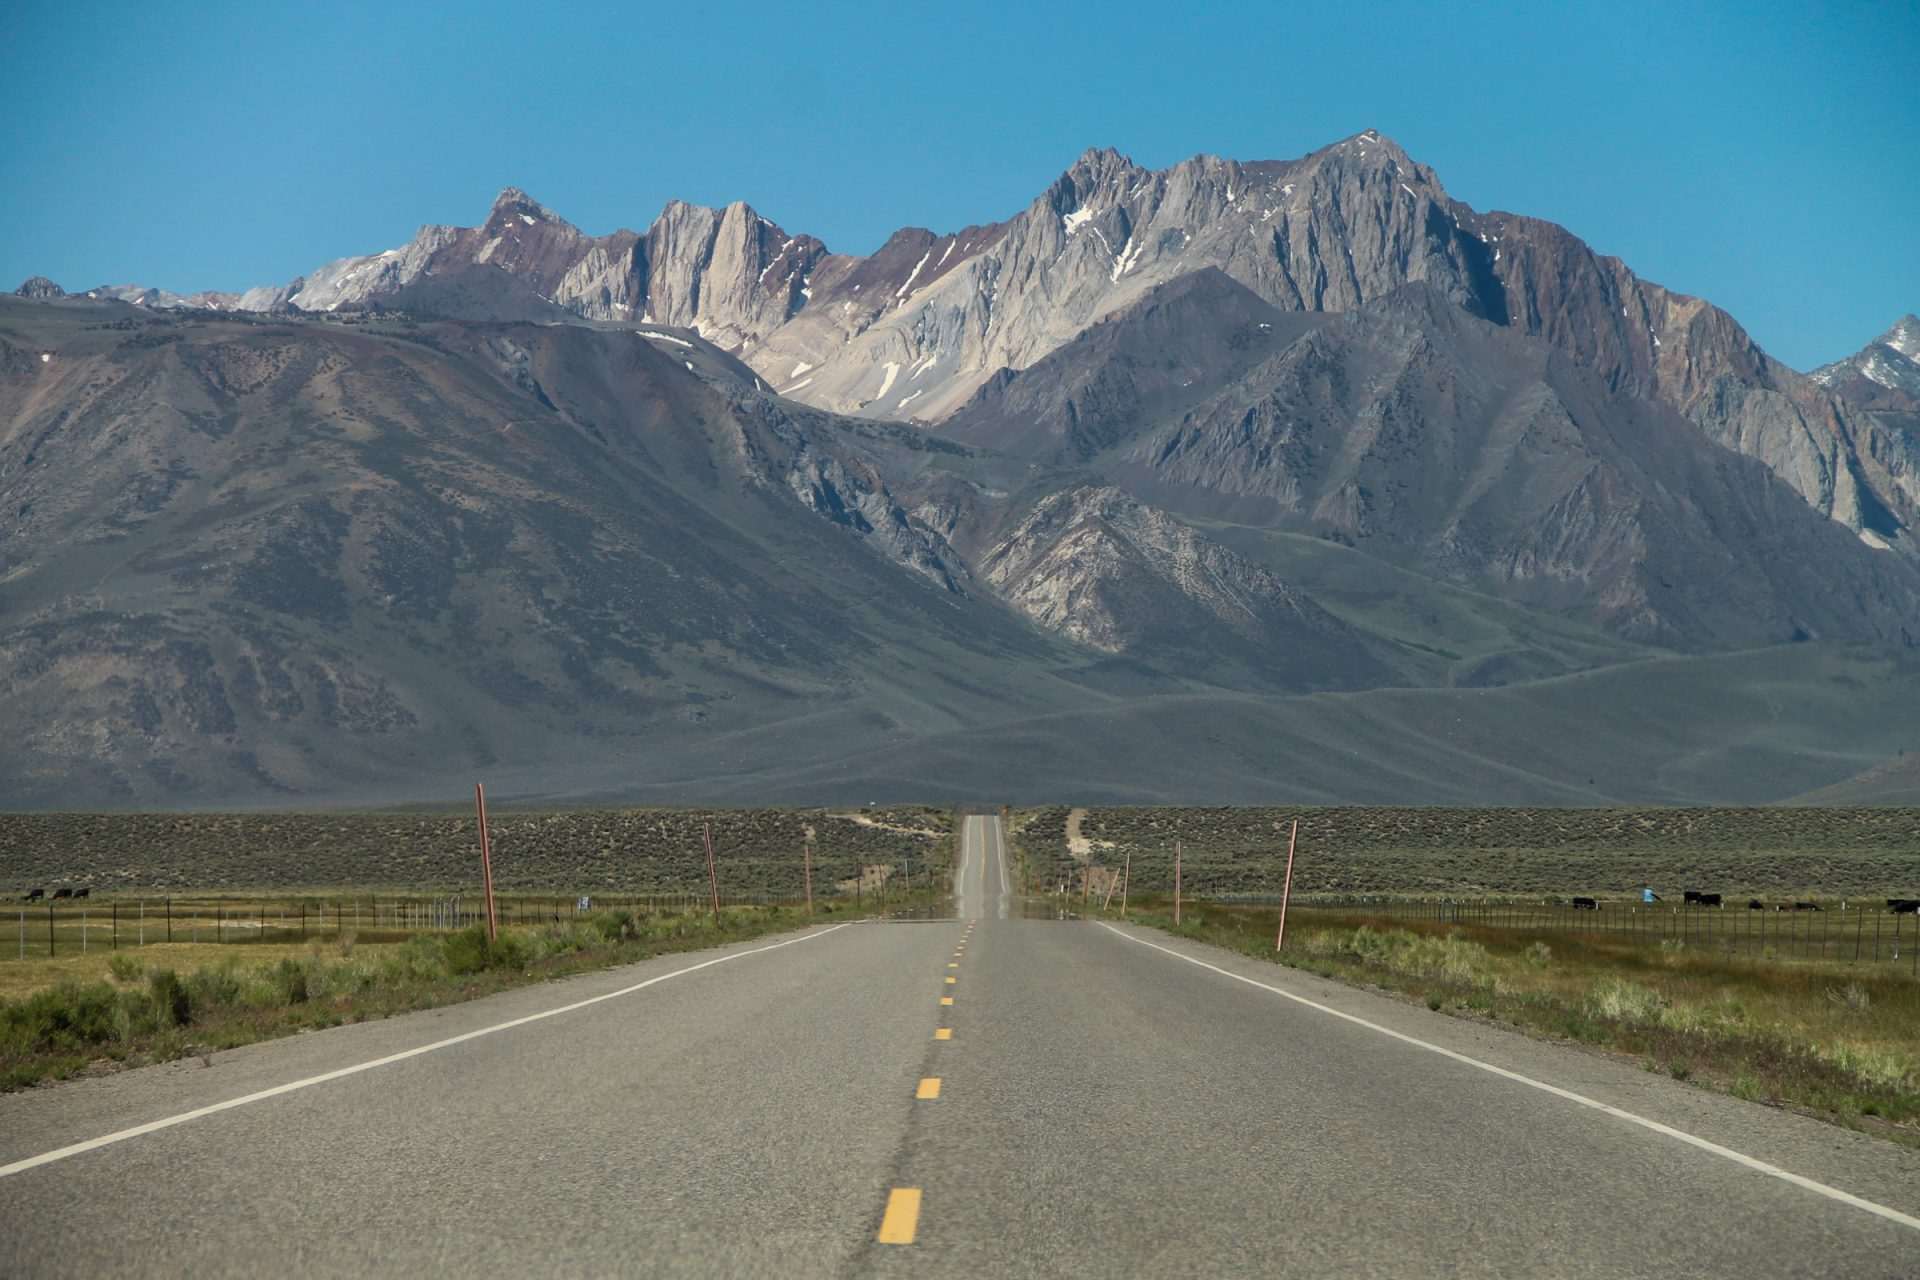 Straight Road Through the Plains to the Mountains